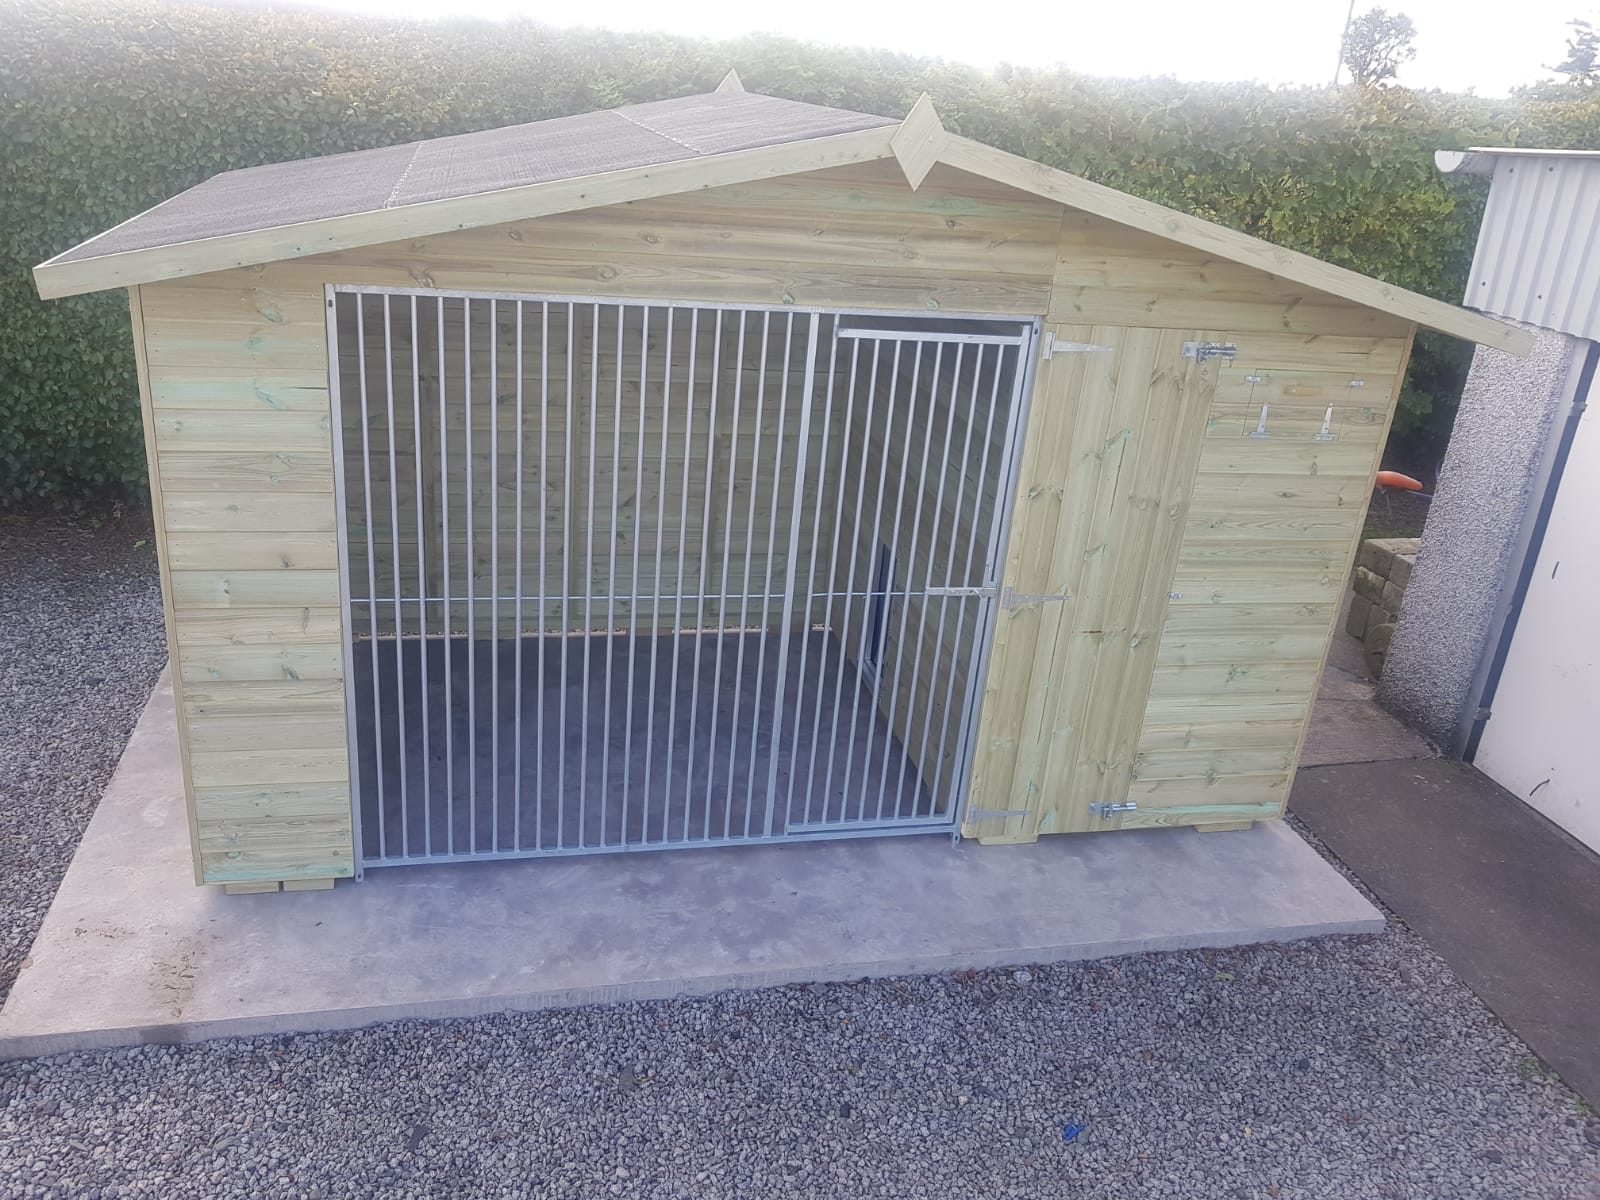 The Bramhall 8ft Wide x 6ft Deep Dog Kennel